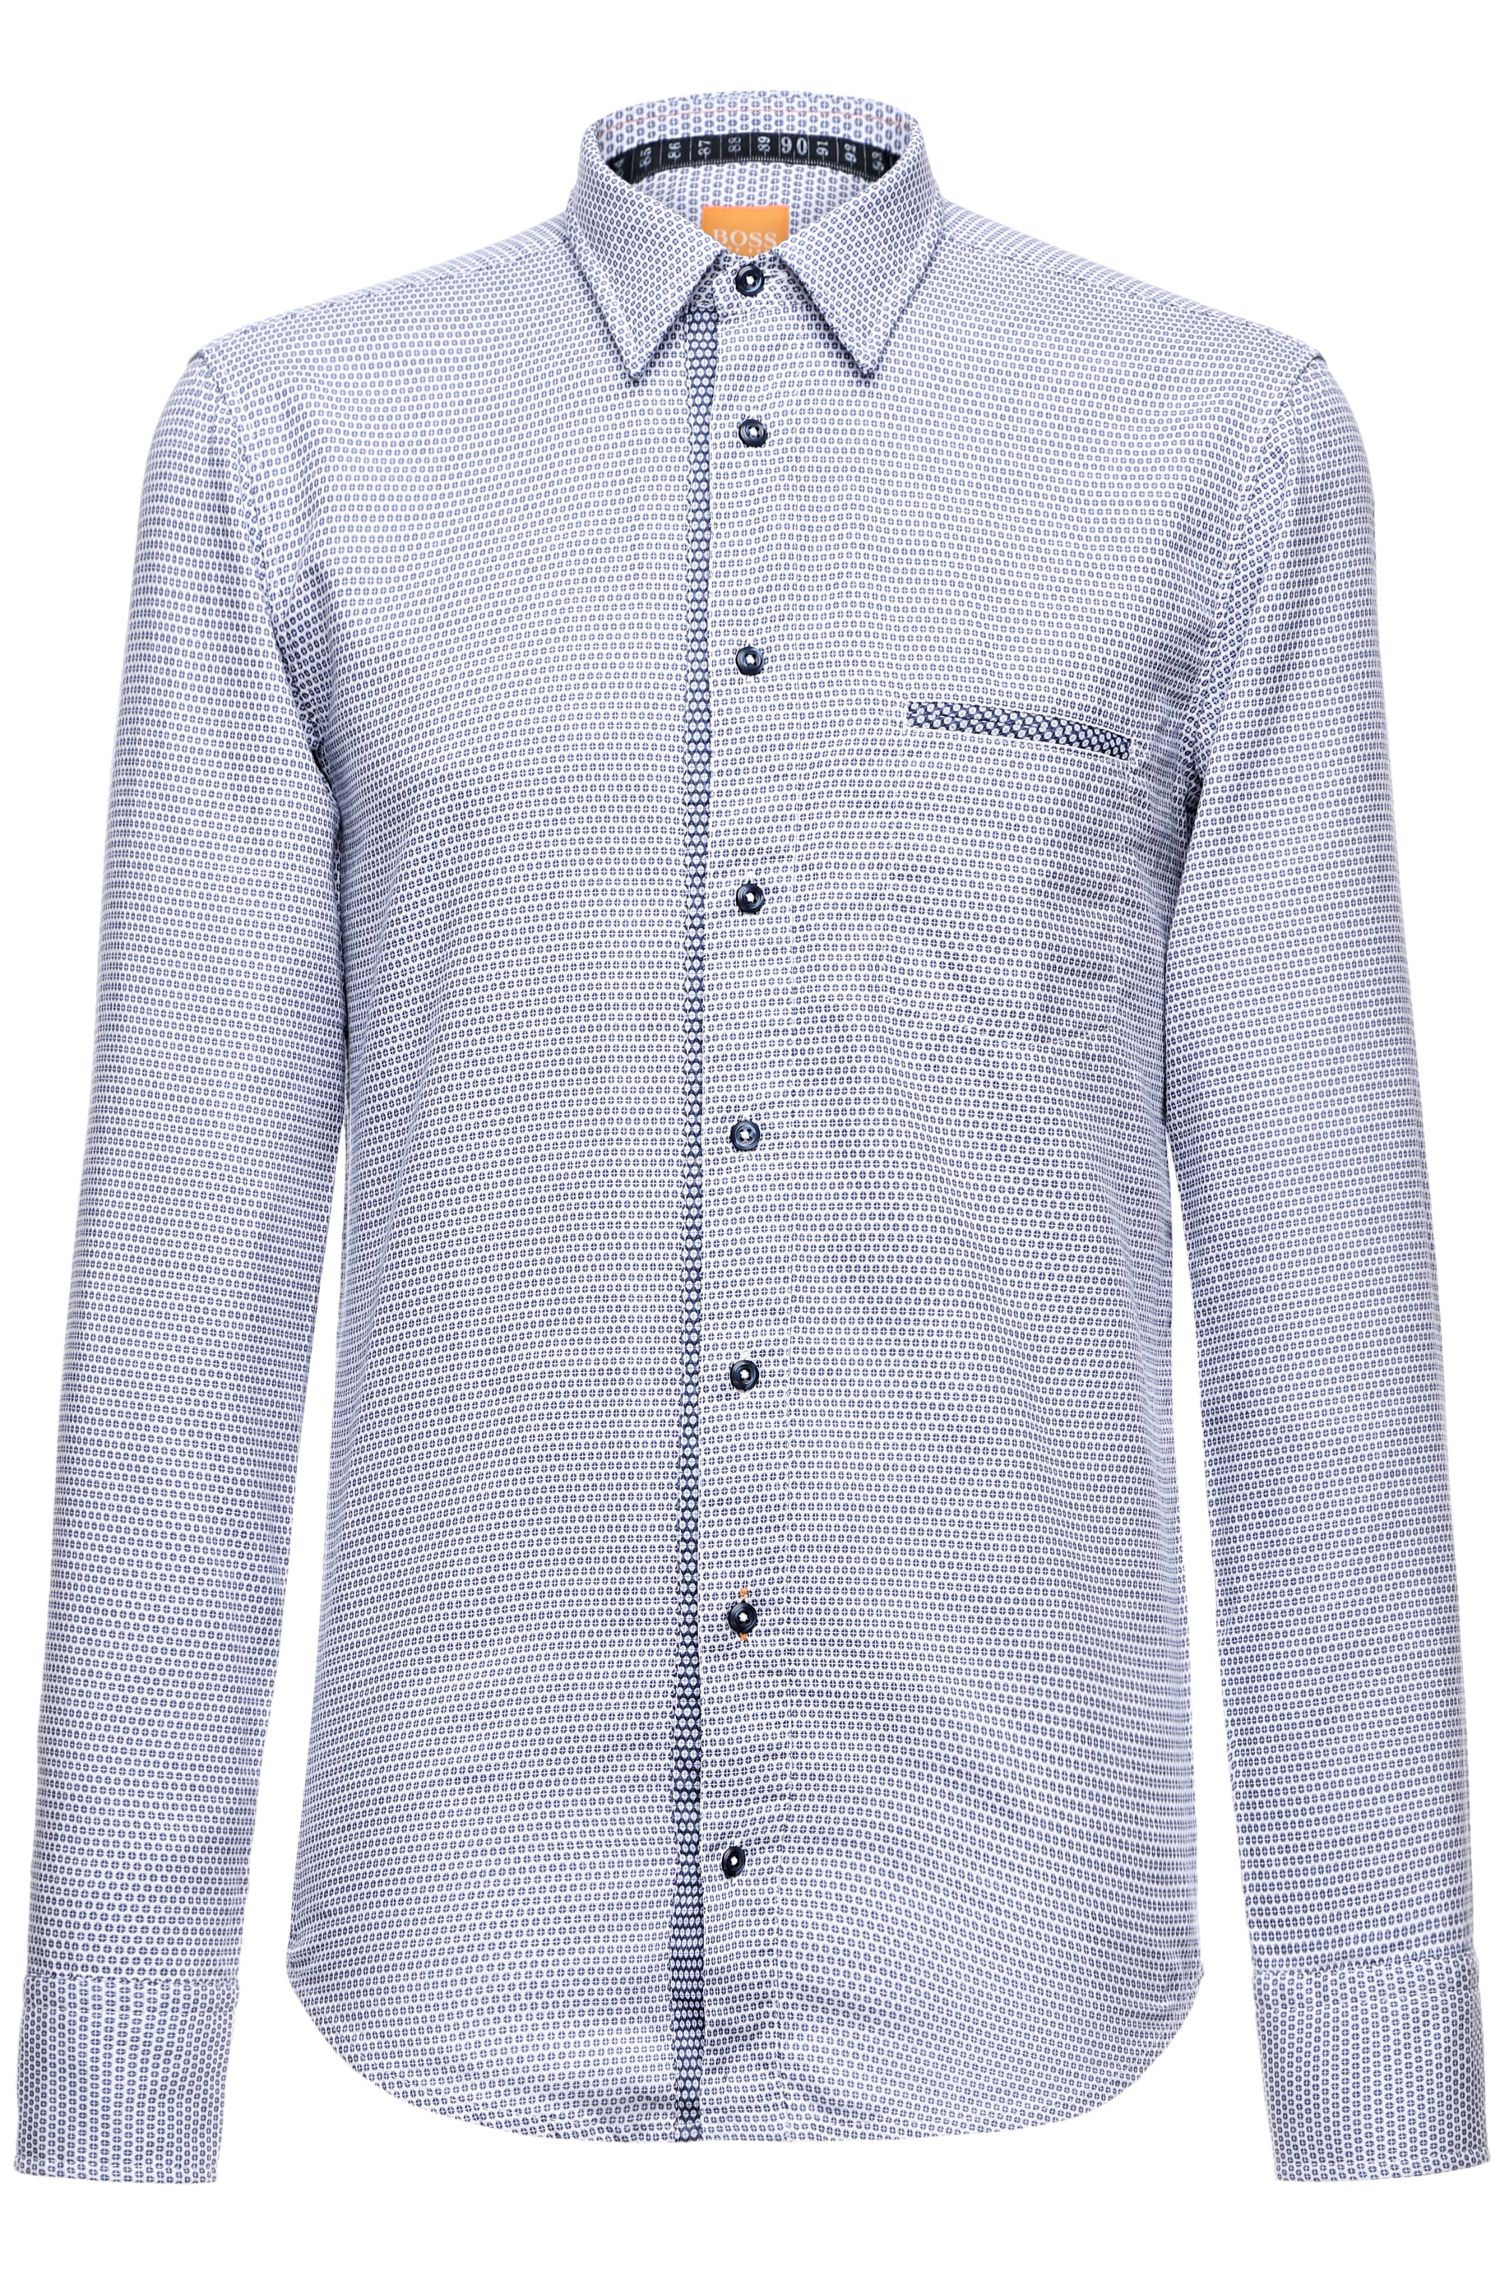 'CieloebuE' | Slim Fit, Cotton Abstract Button Down Shirt